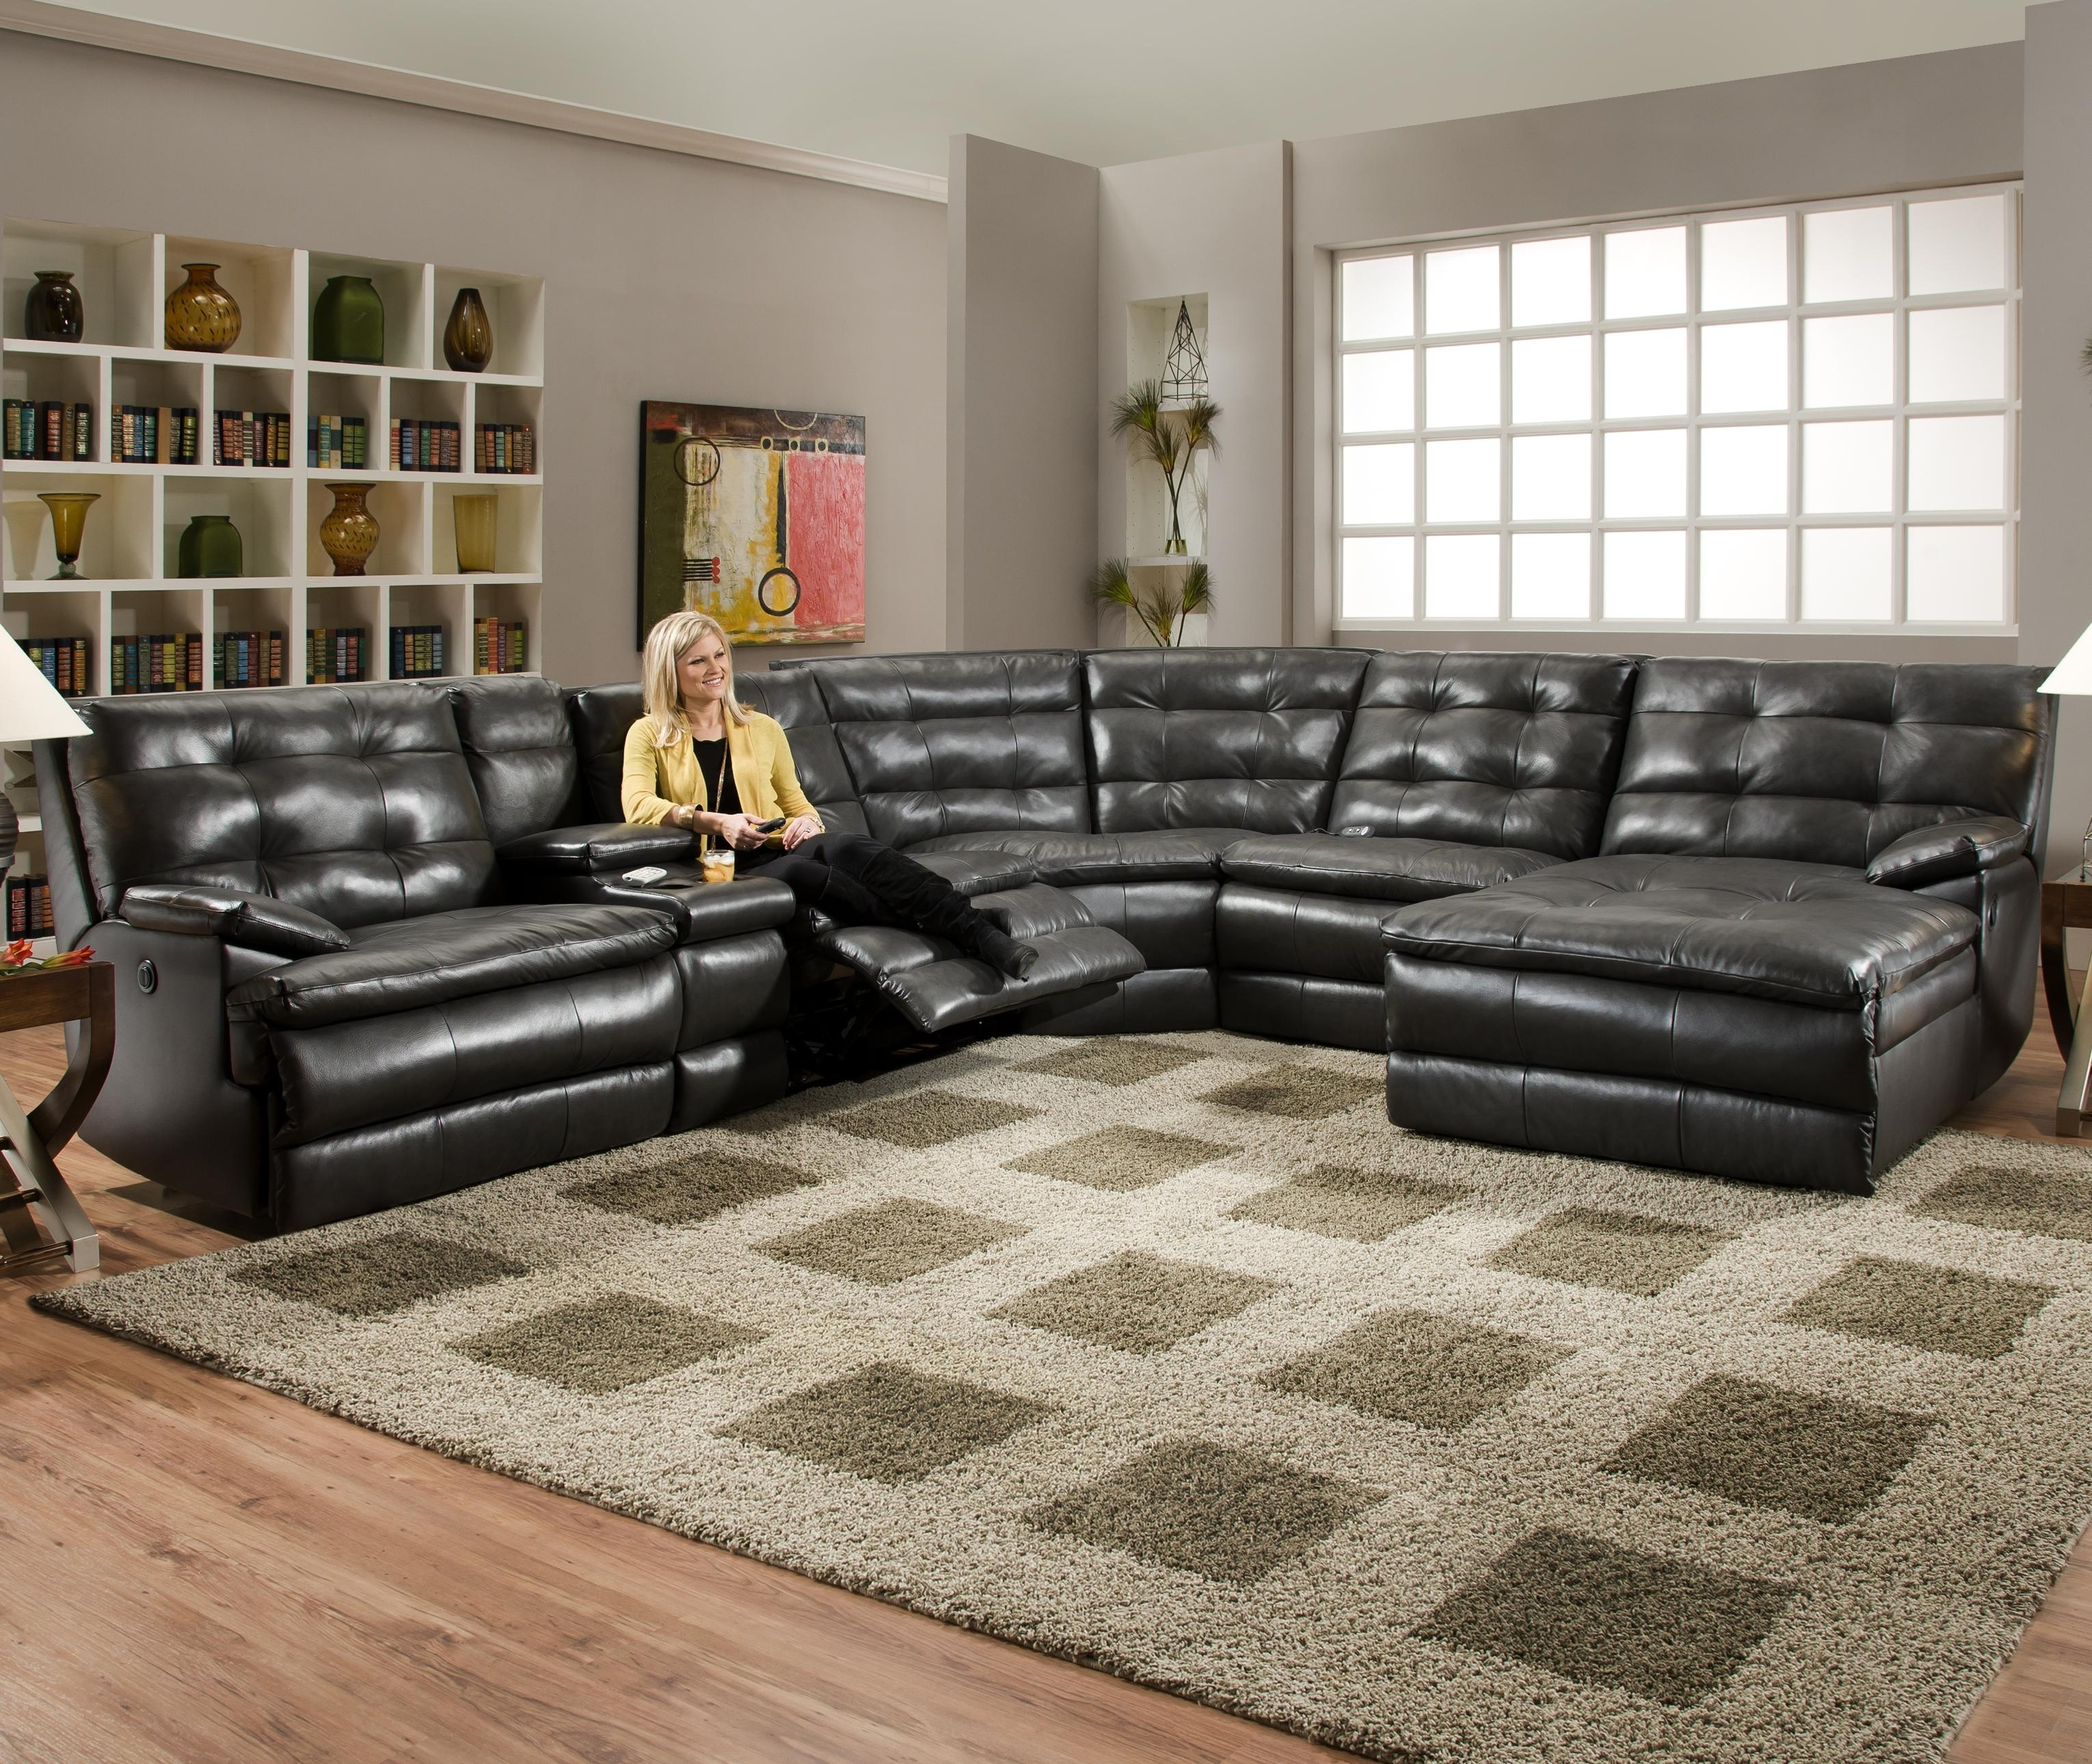 Luxurious Tufted Leather Sectional Sofa In Classy Black Color With With Regard To Leather Motion Sectional Sofas (View 5 of 10)